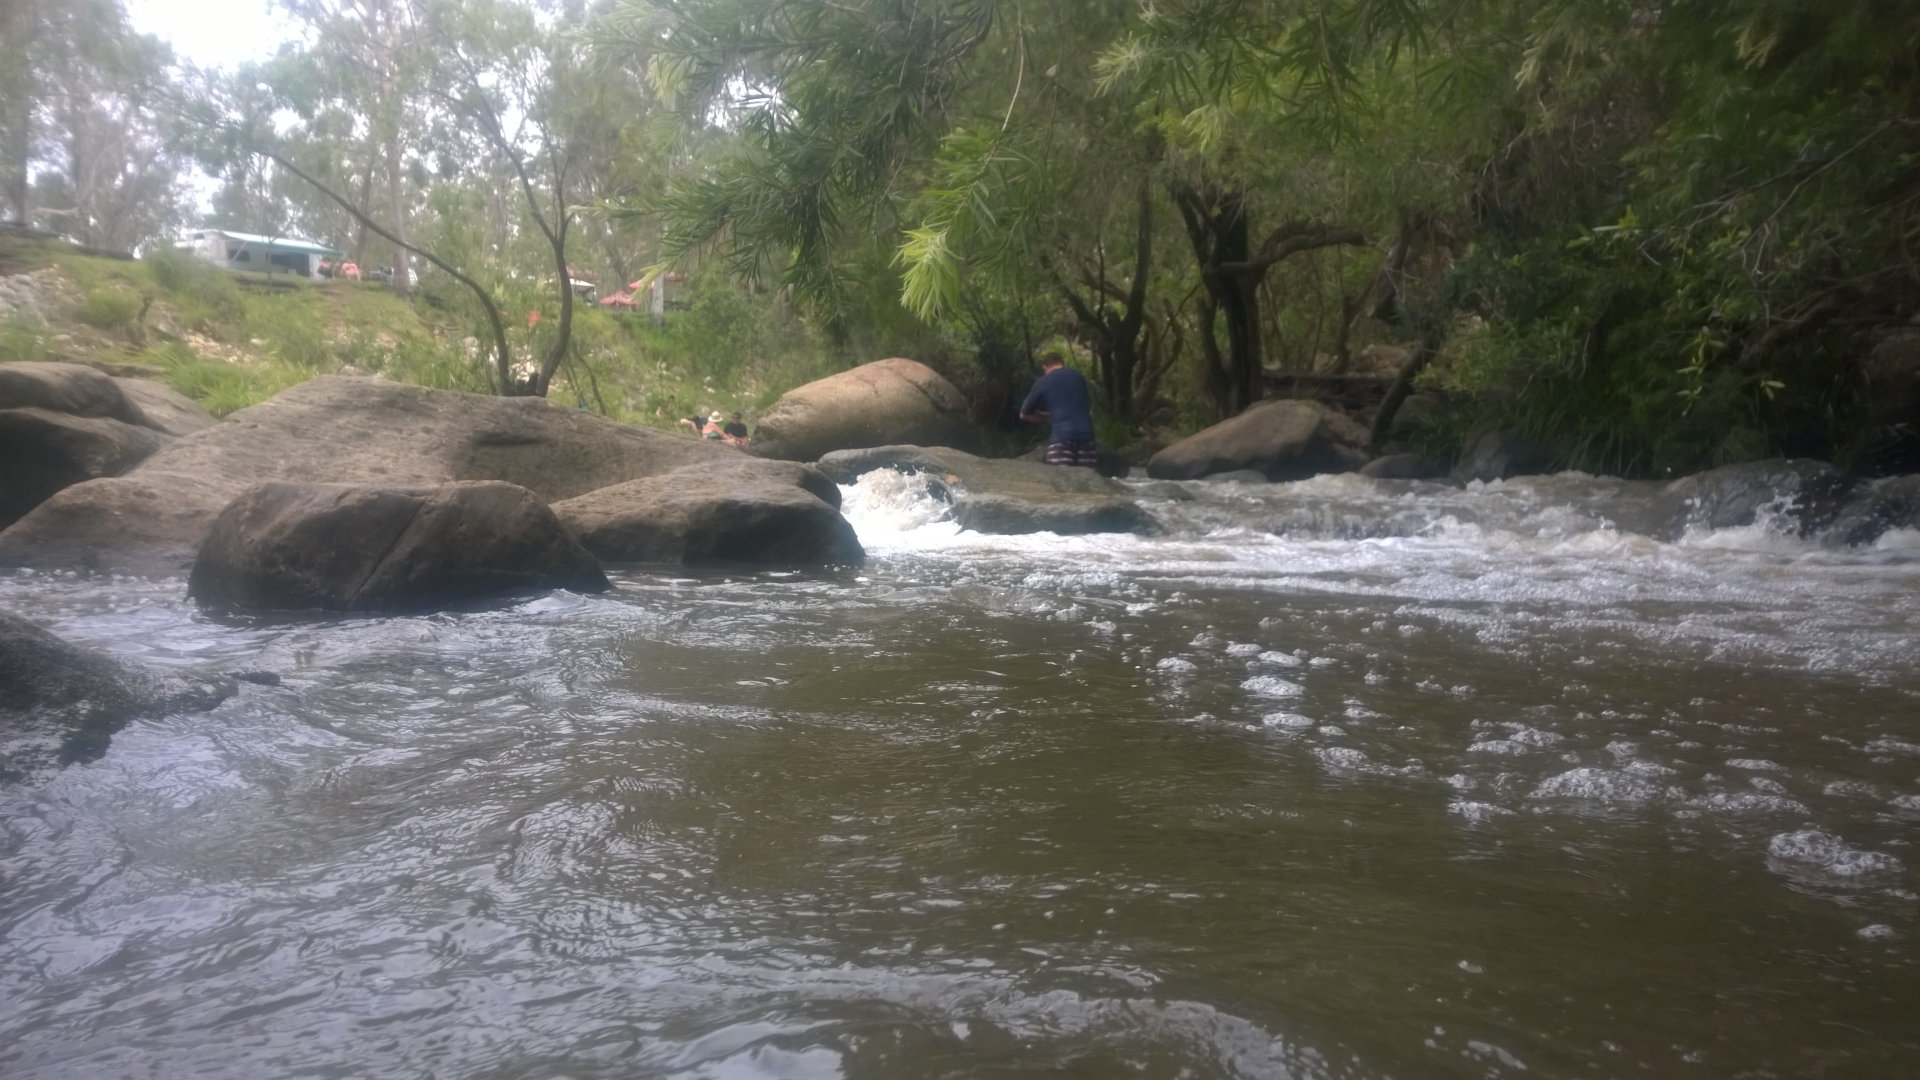 Creek swimming at Flanagan Reserve, a camping ground in the Scenic Rim overlooked by Mt Maroon, with fresh water Logan River running along the length of it